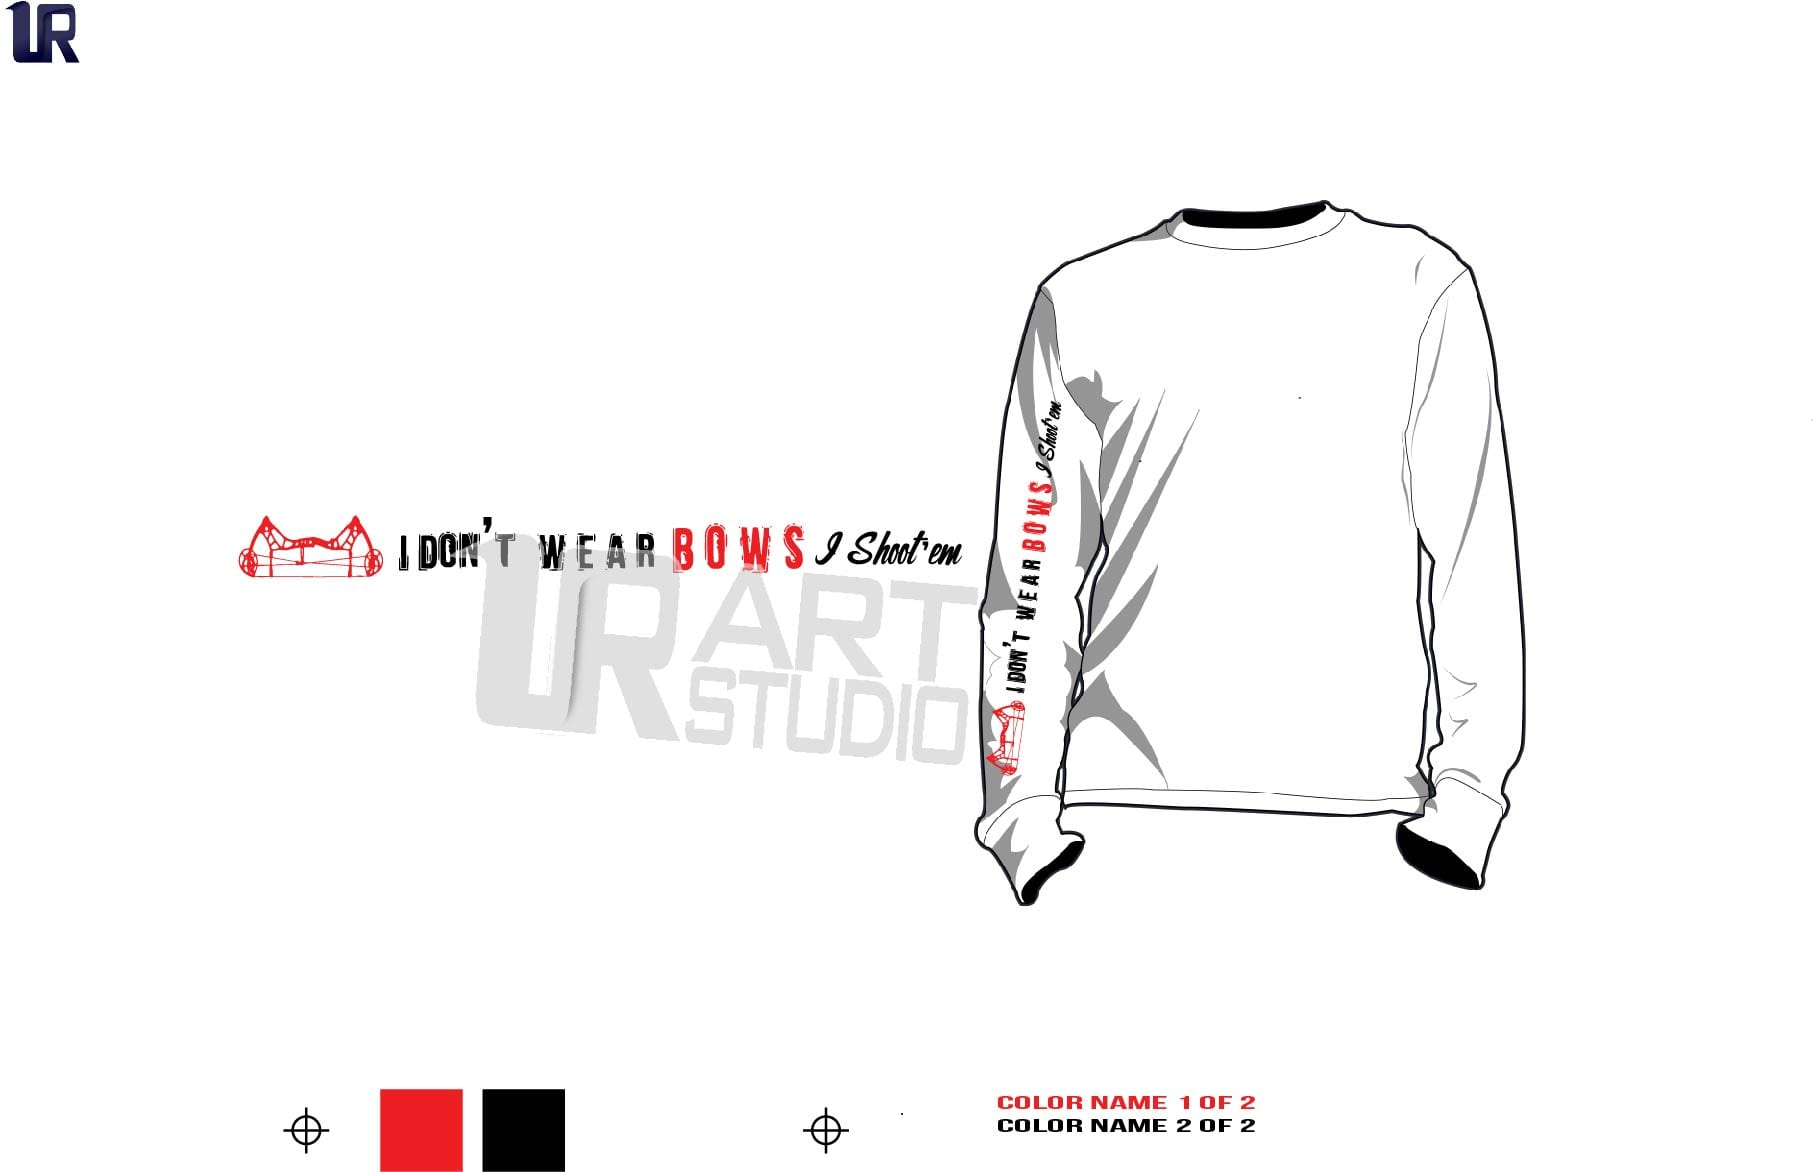 DOWNLOAD I dont wear a bow i shoot them ttshirt vector design 2 color separated for print on sleeve